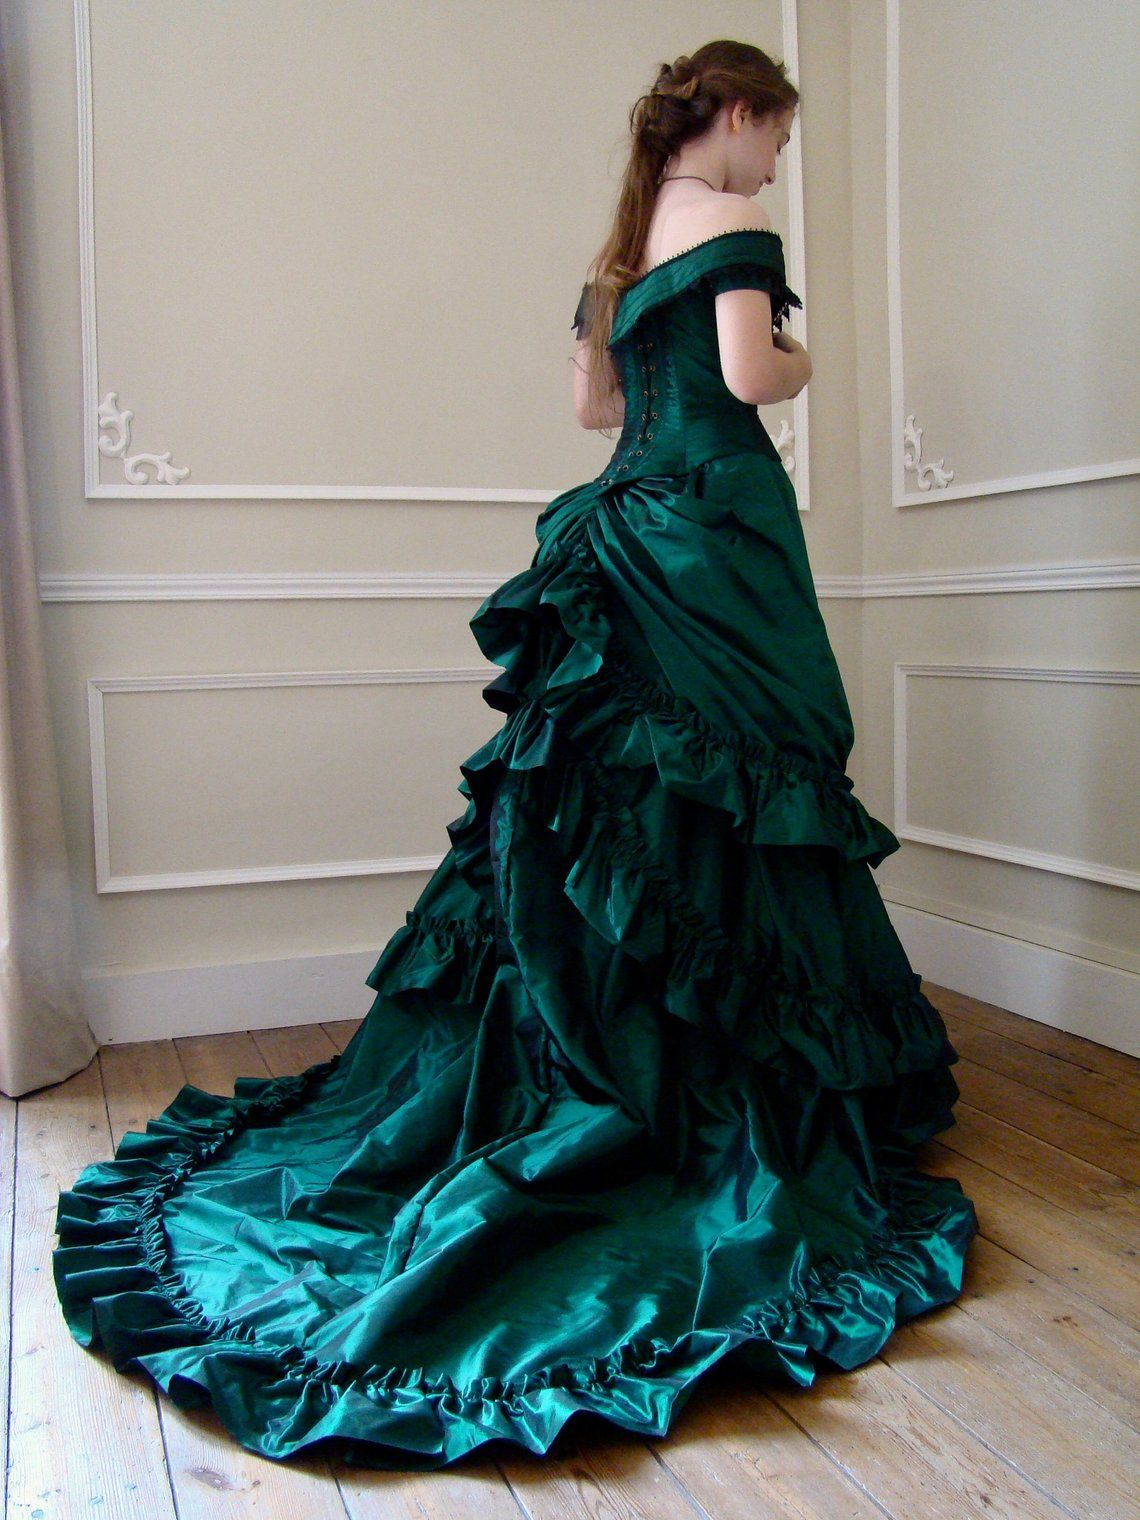 Victorian prom dress in green taffeta bottle (With images